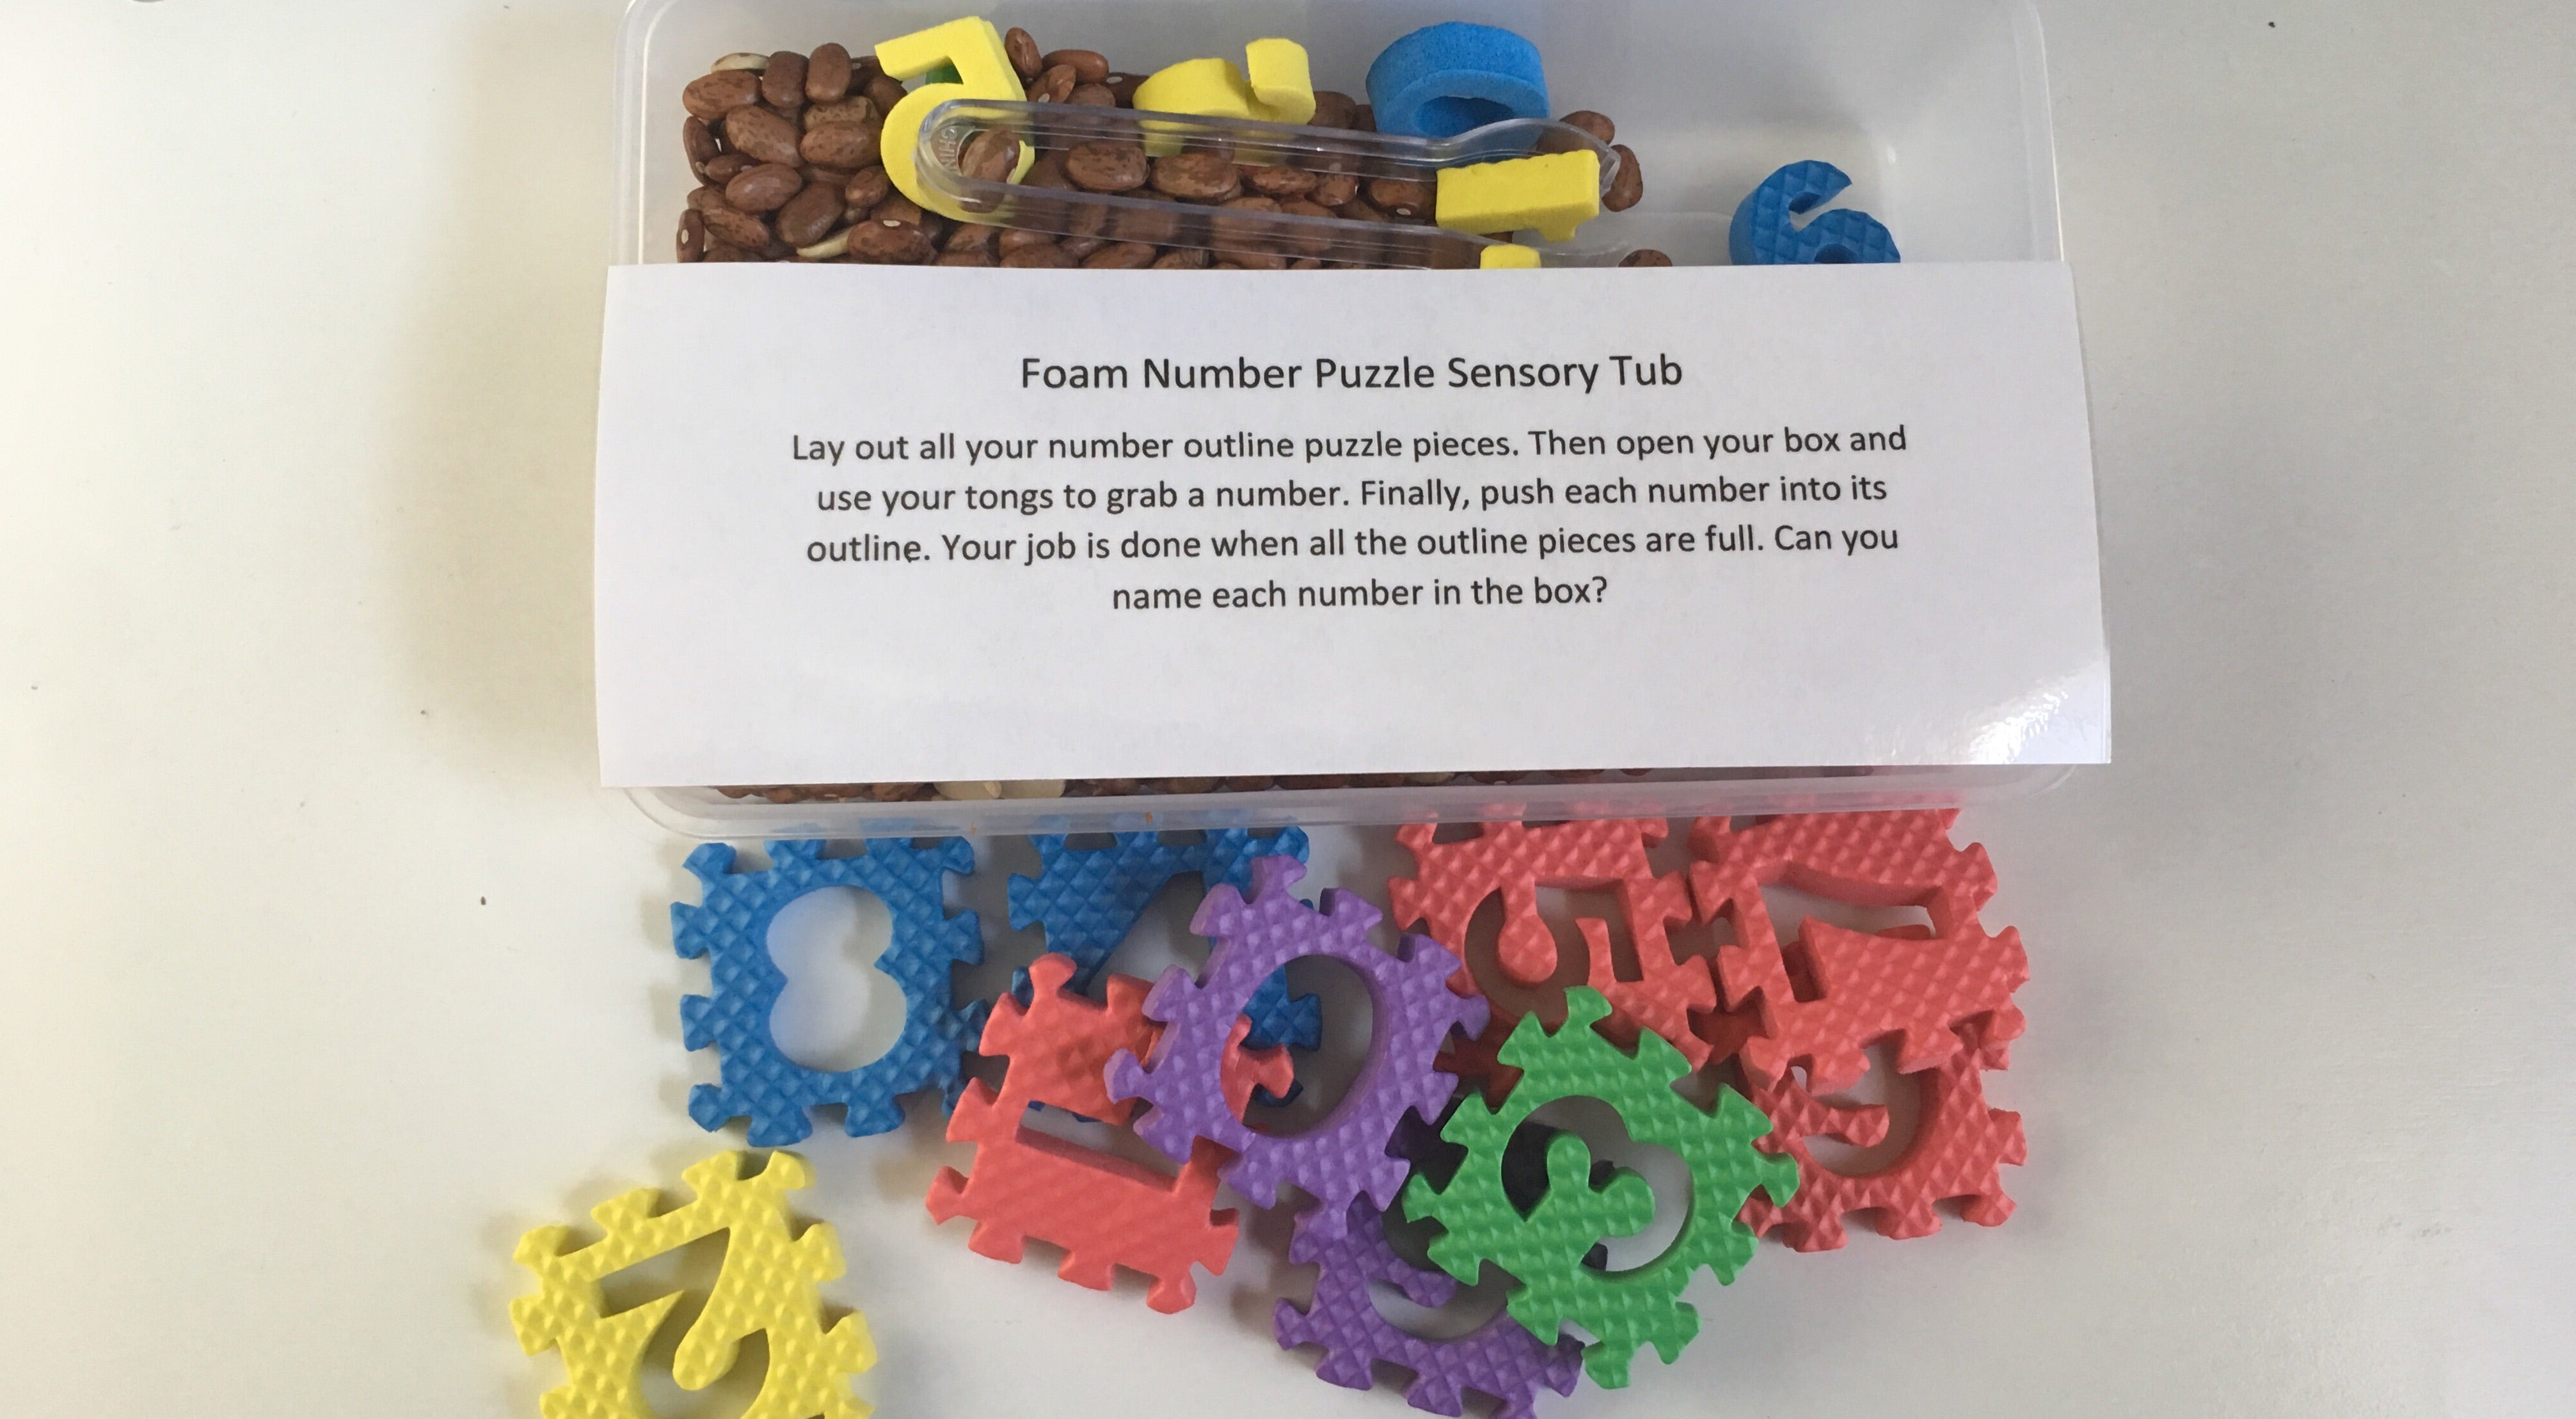 Foam Number Puzzle Sensory Tub